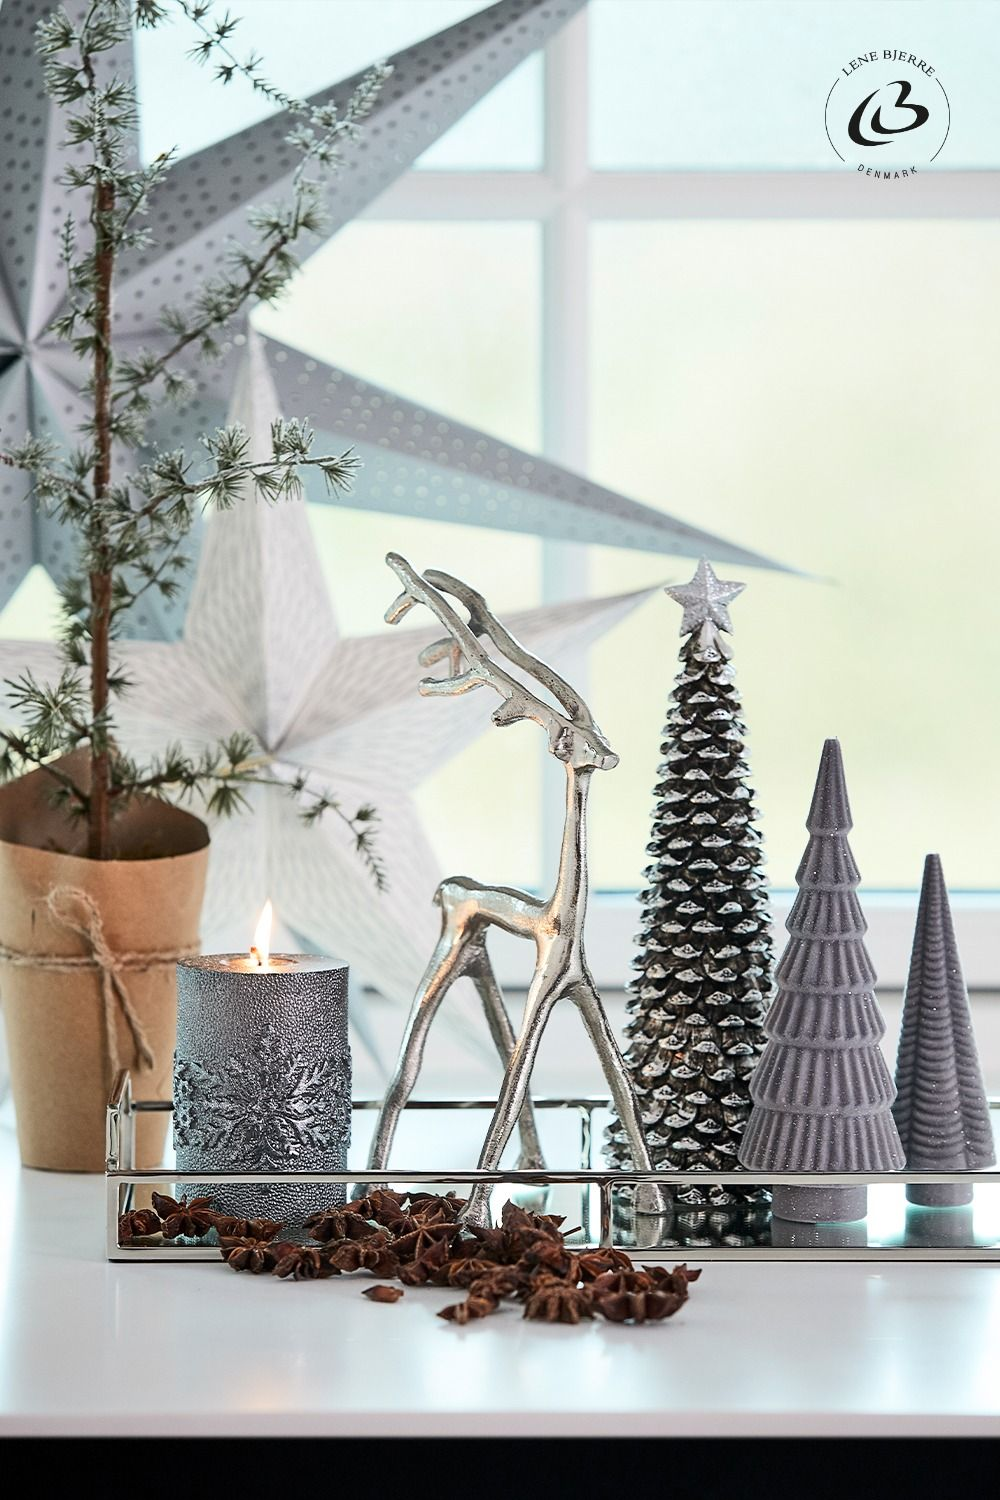 Do you want to get your home ready for Christmas? Find ideas for a cosy Christmas home with the right Christmas home decor ideas. We have gathered a list of 15 easy and creative Christmas decor ideas for you. Click the pin and read our inspirational home decoration article. #christmasdecorideas #christmasdecor #christmasdecordiy #diychristmasdecorations #christmastreeideas #christmasdecorations #christmasdecorideasforthehome #christmasdecorideas2020 #christmashome